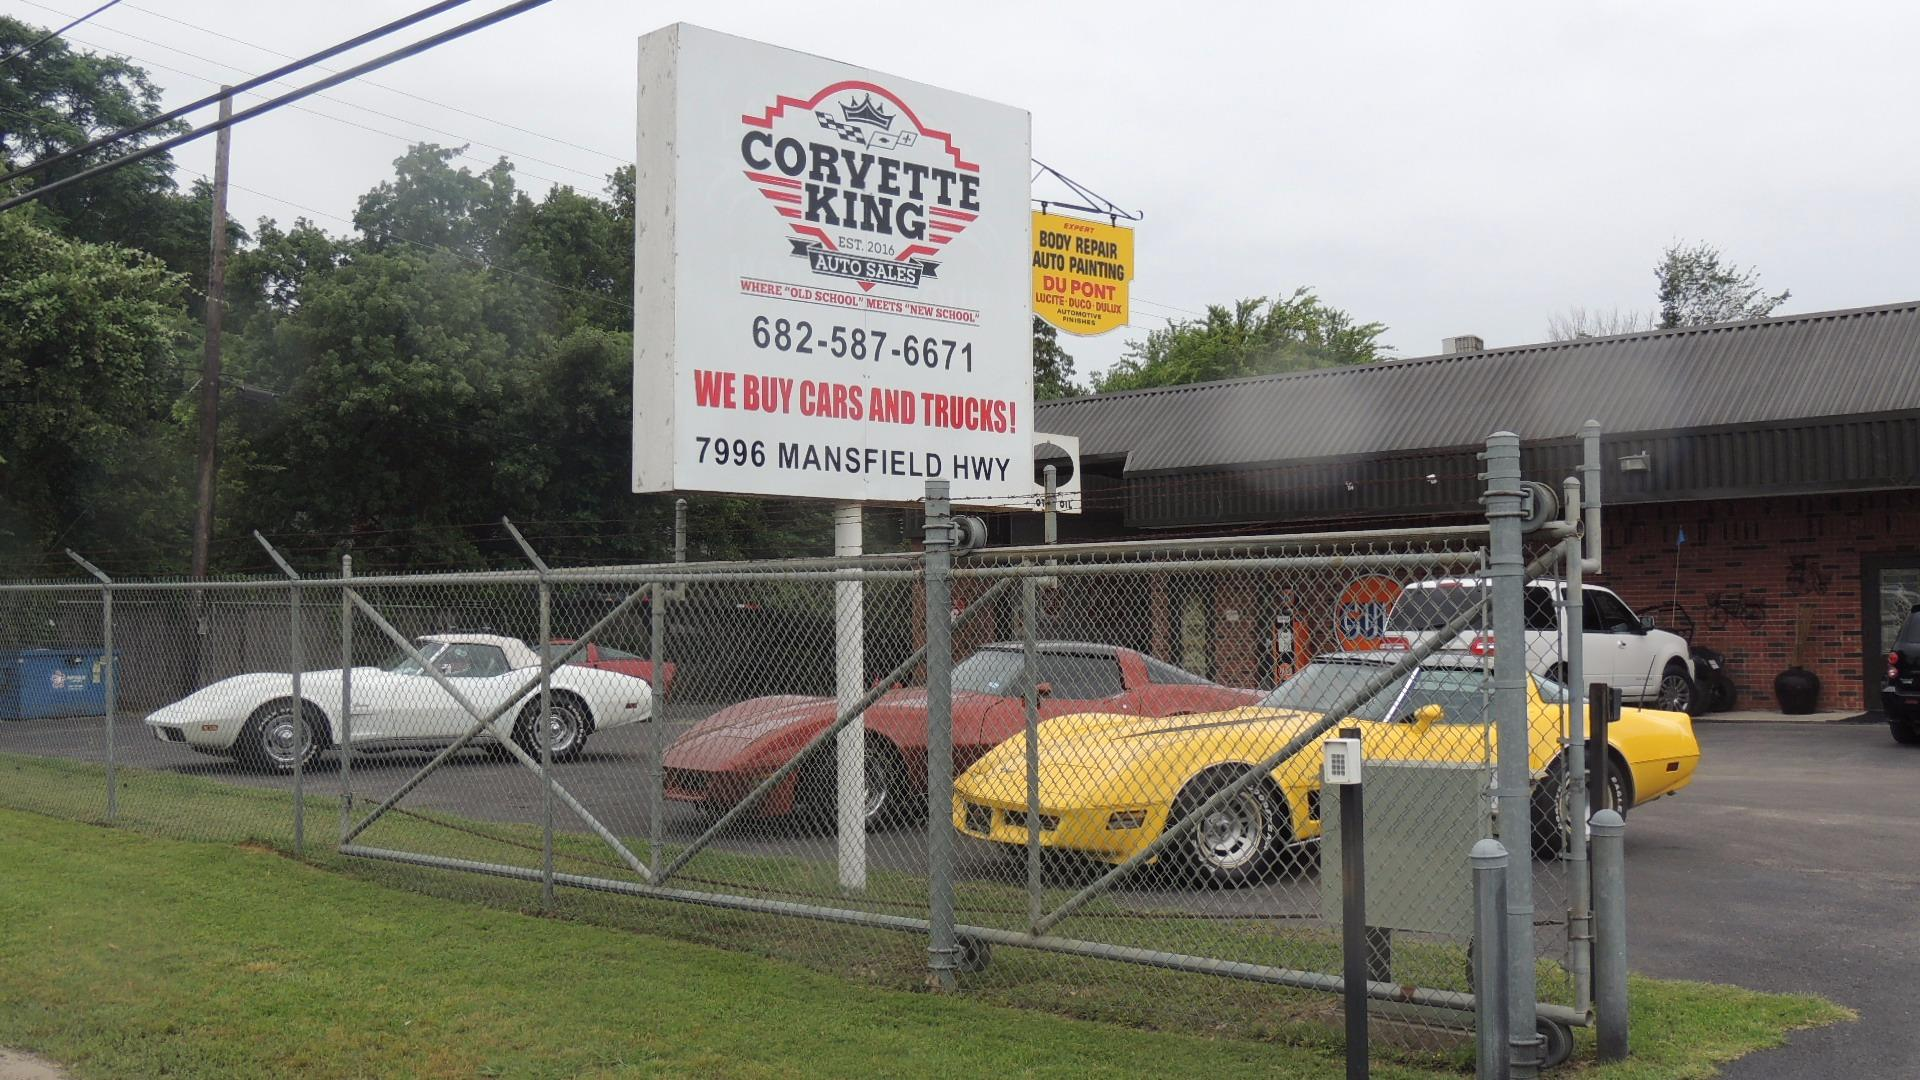 Corvette King Auto Sales image 1